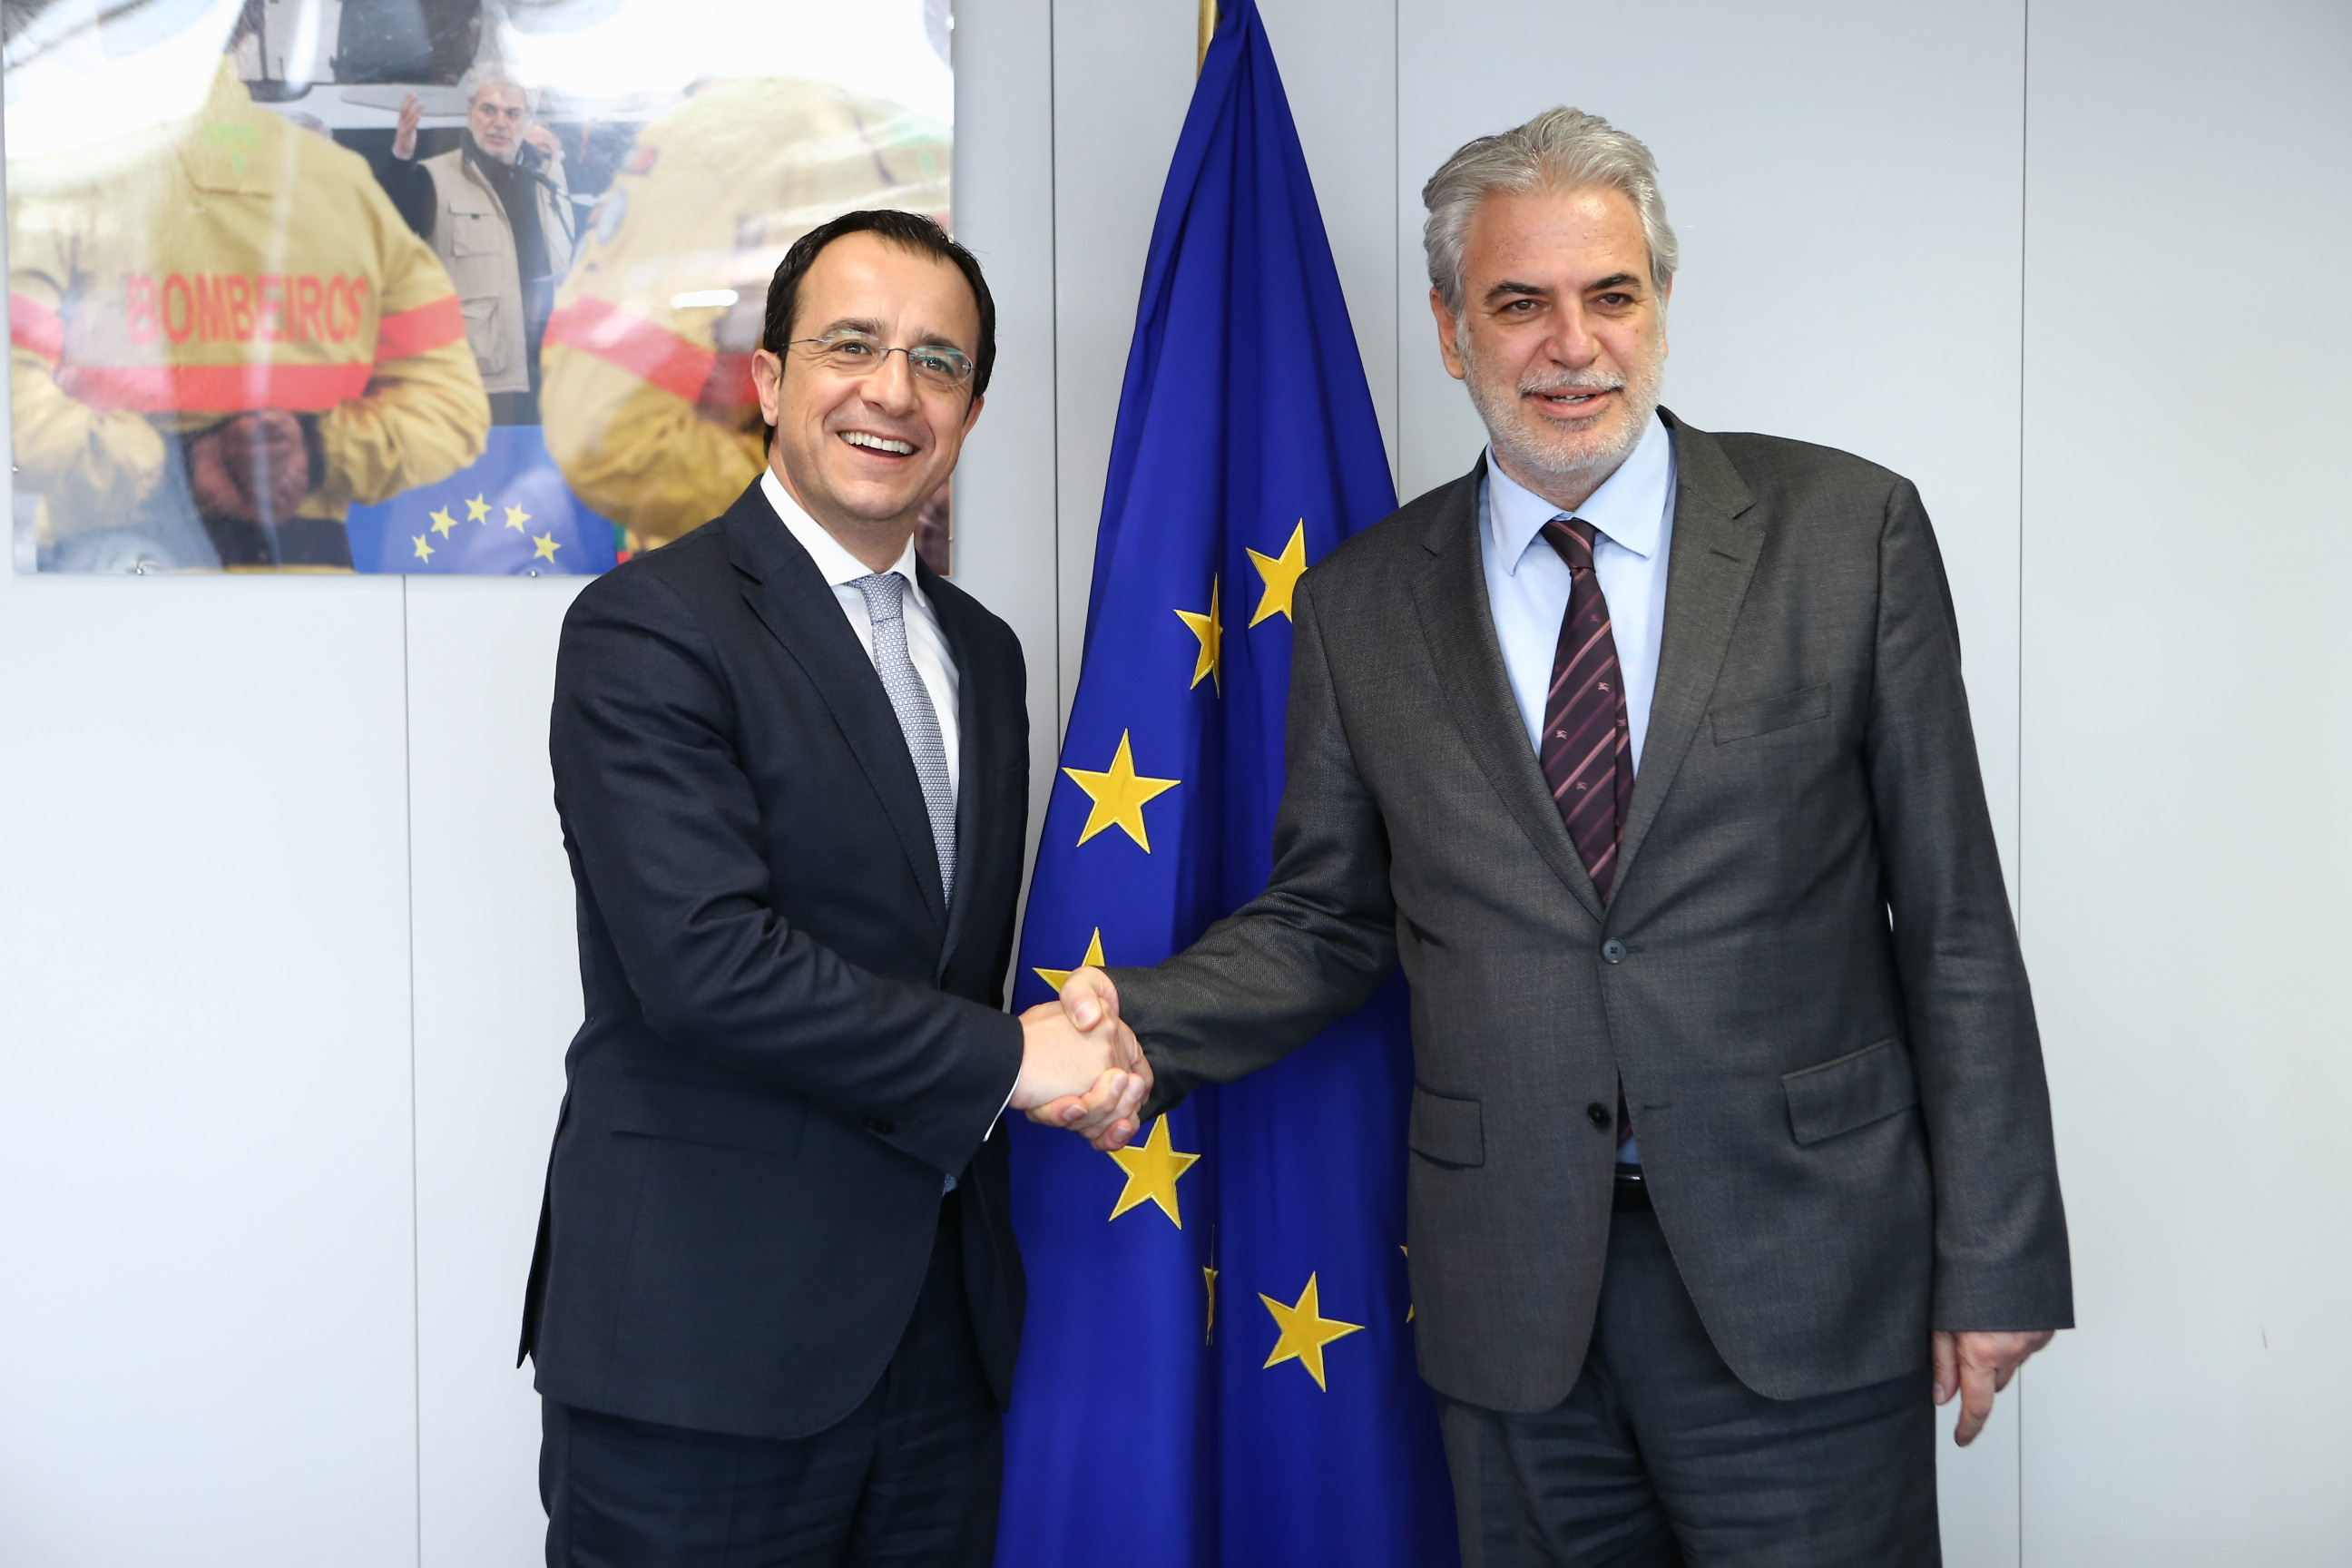 Foreign Minister Christodoulides participated in the EU General Affairs Council